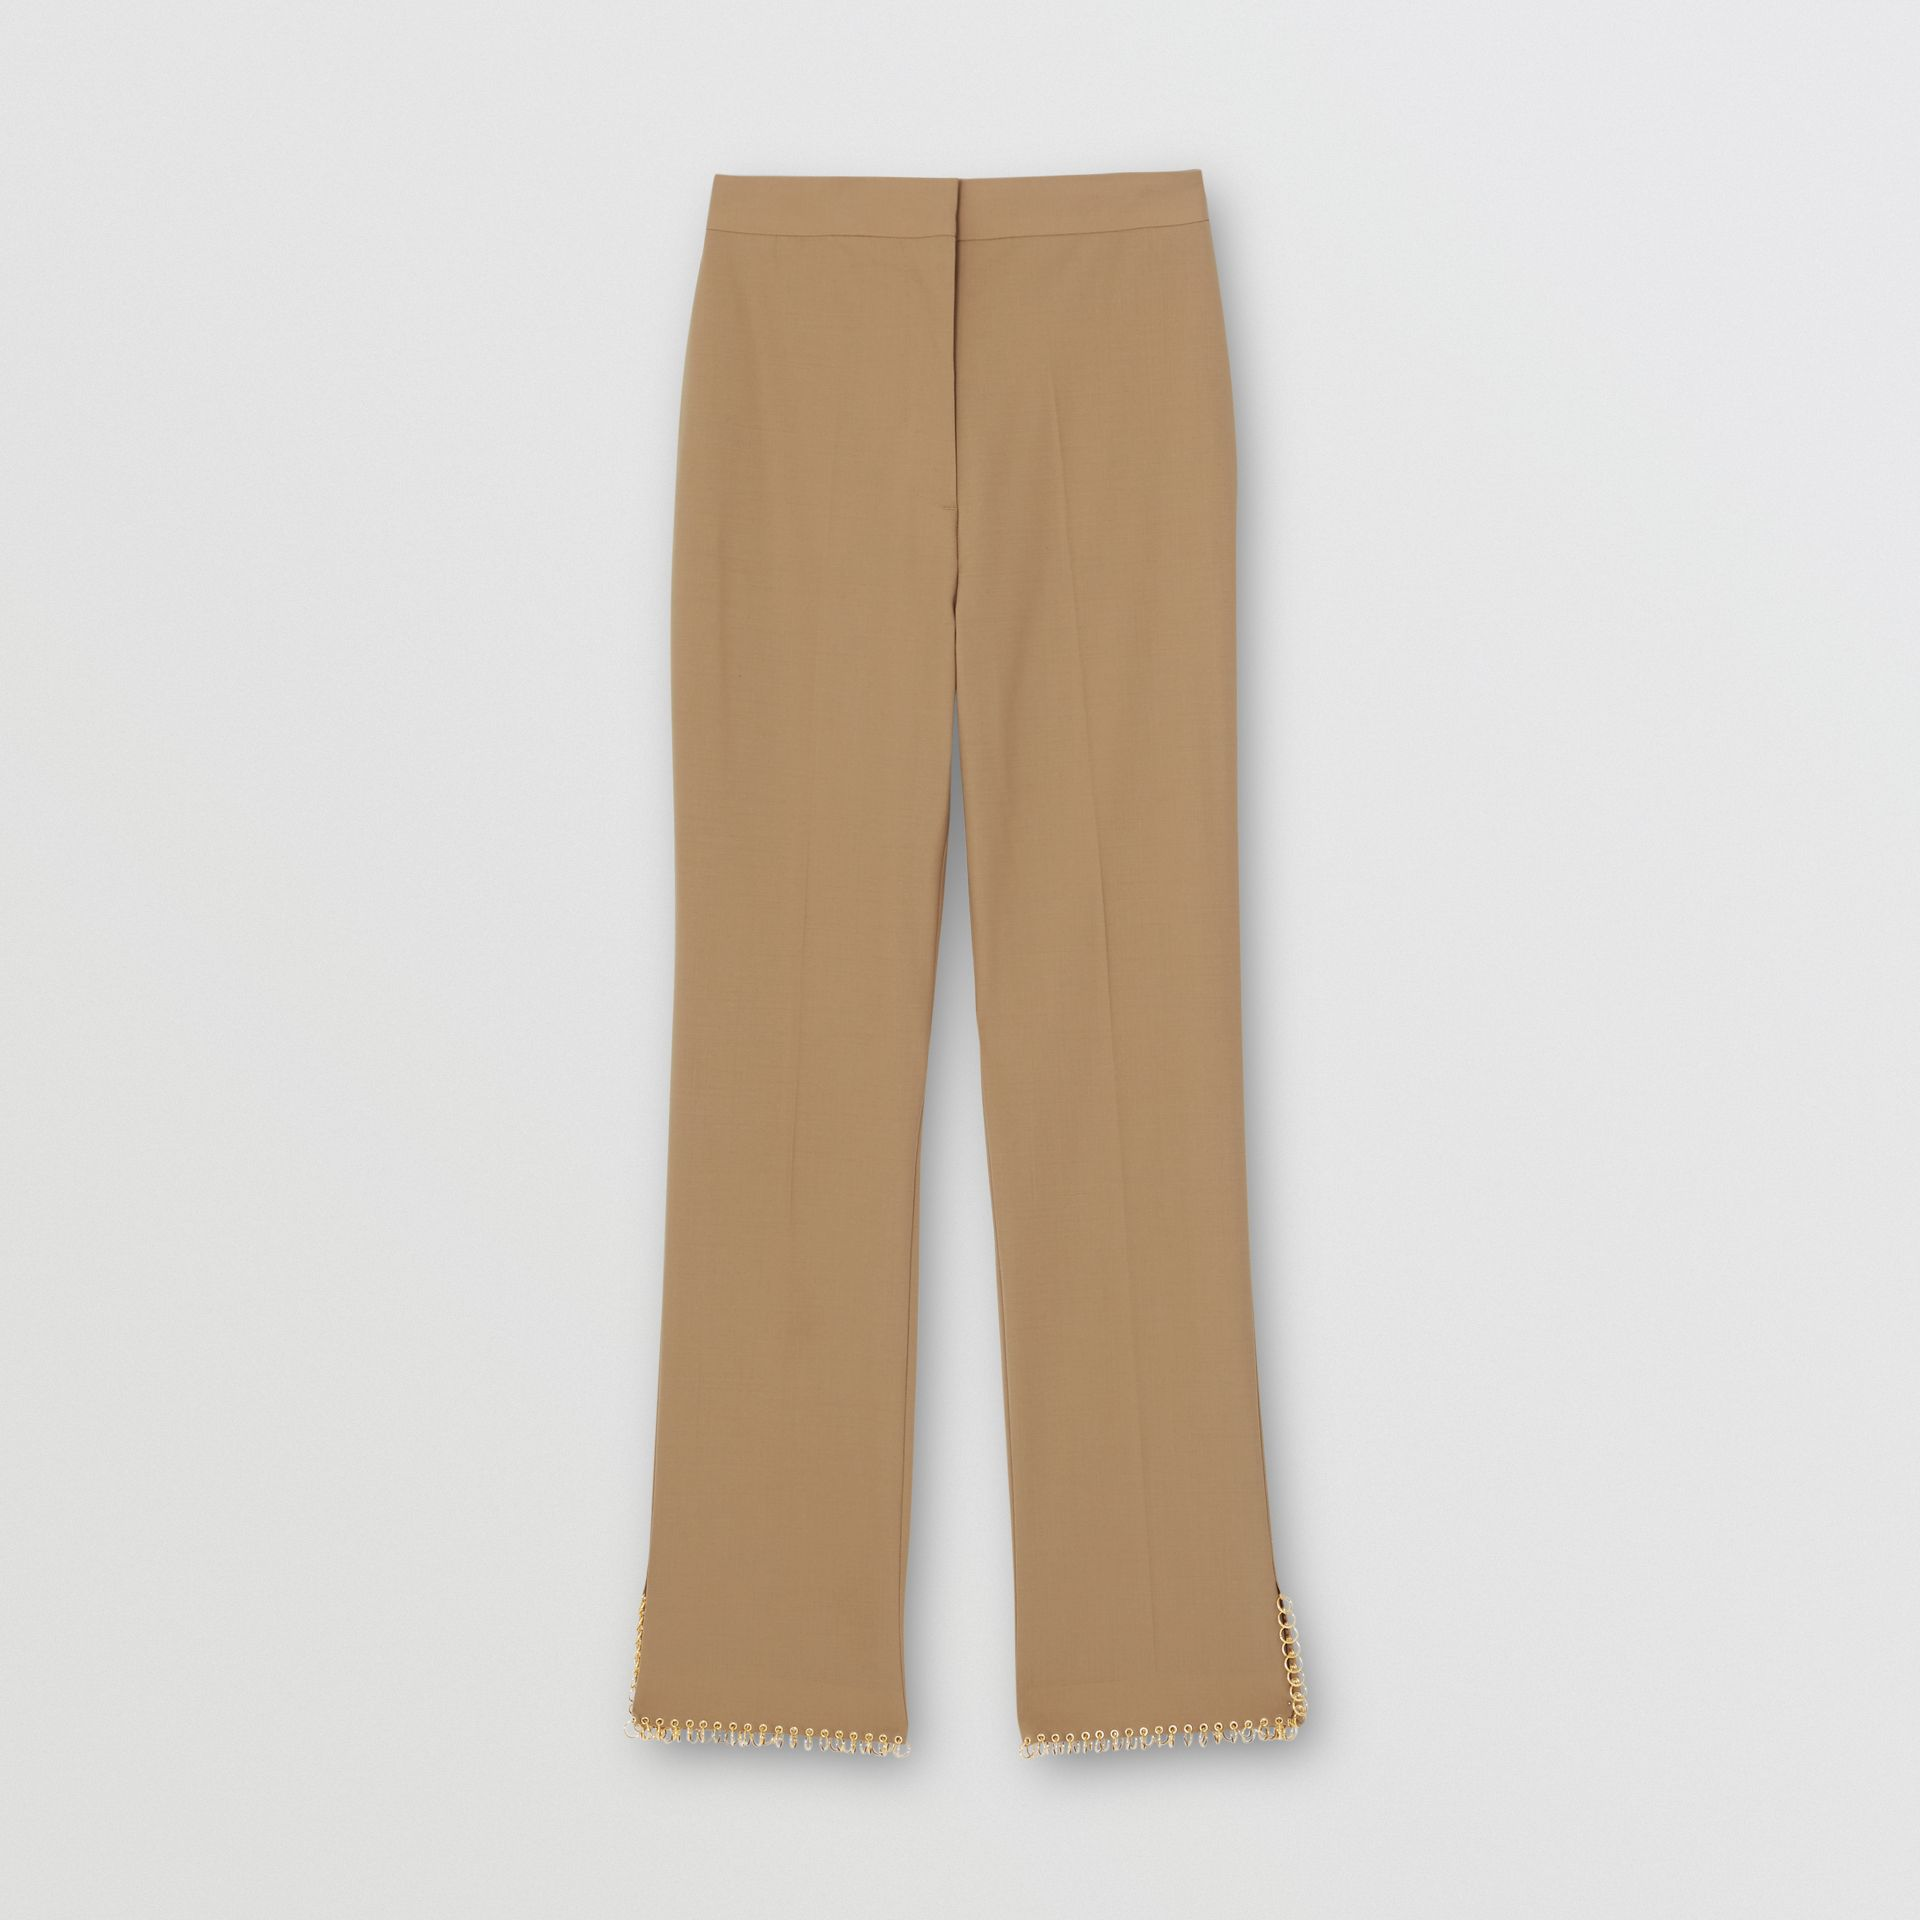 Pantalon en laine avec piercings (Miel) - Femme | Burberry - photo de la galerie 3